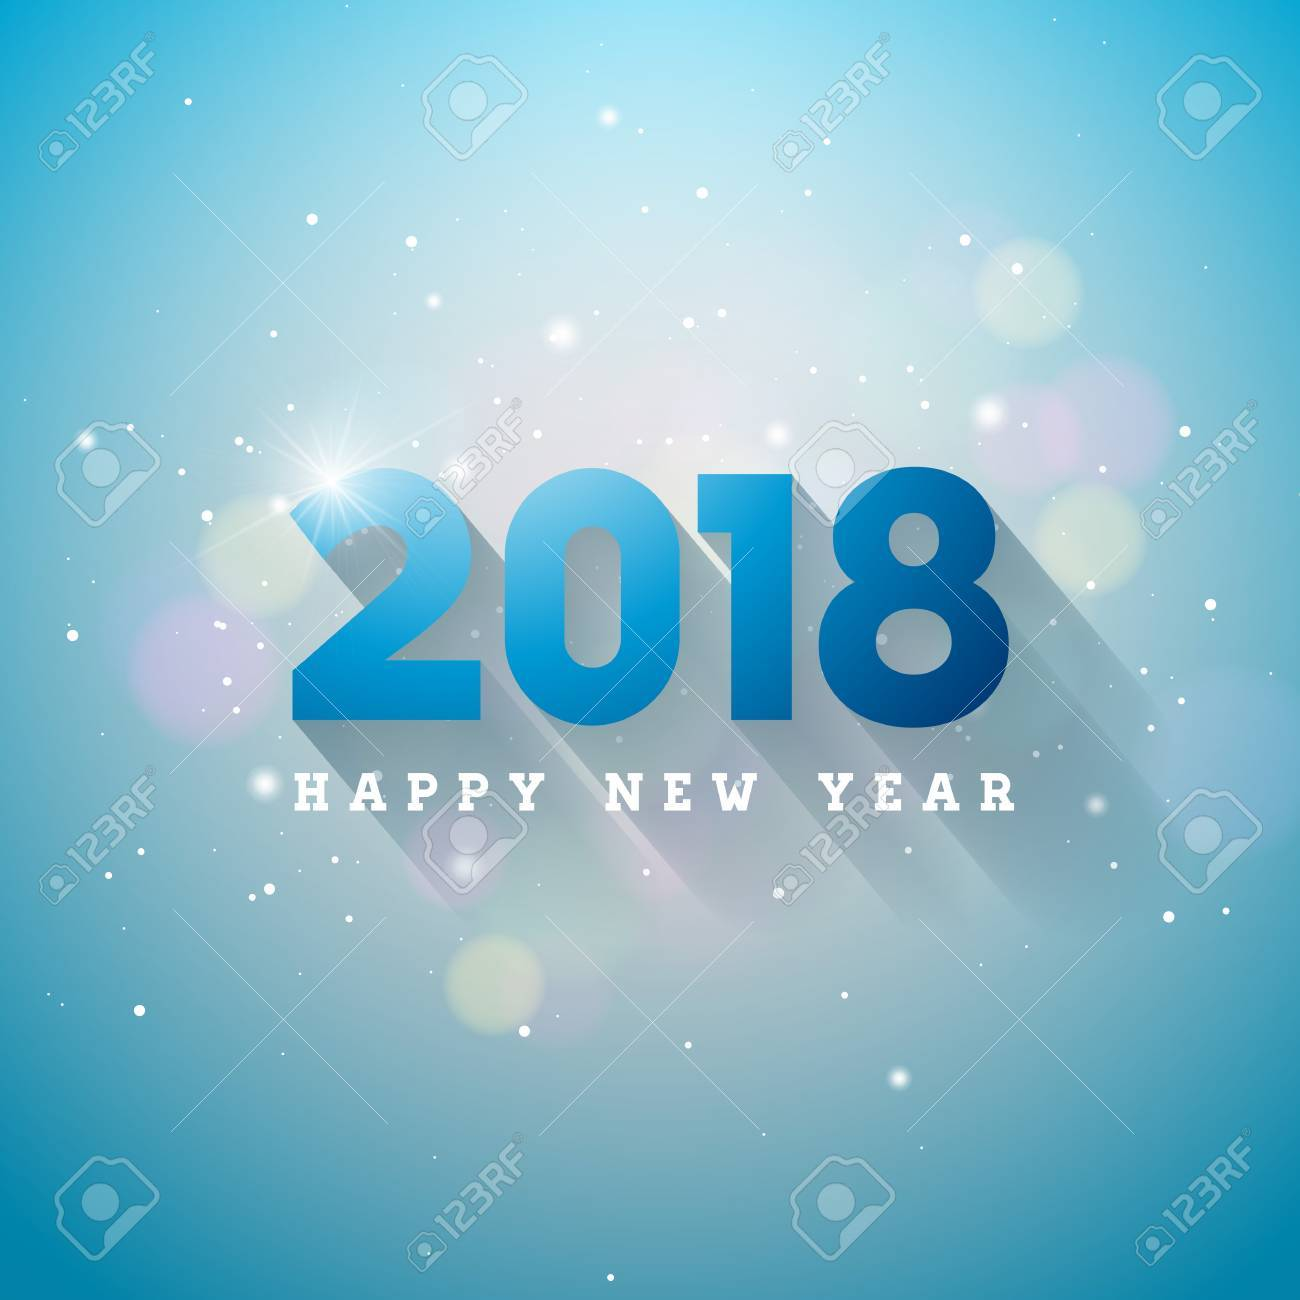 vector vector happy new year 2018 illustration on shiny lighting blue background with typography